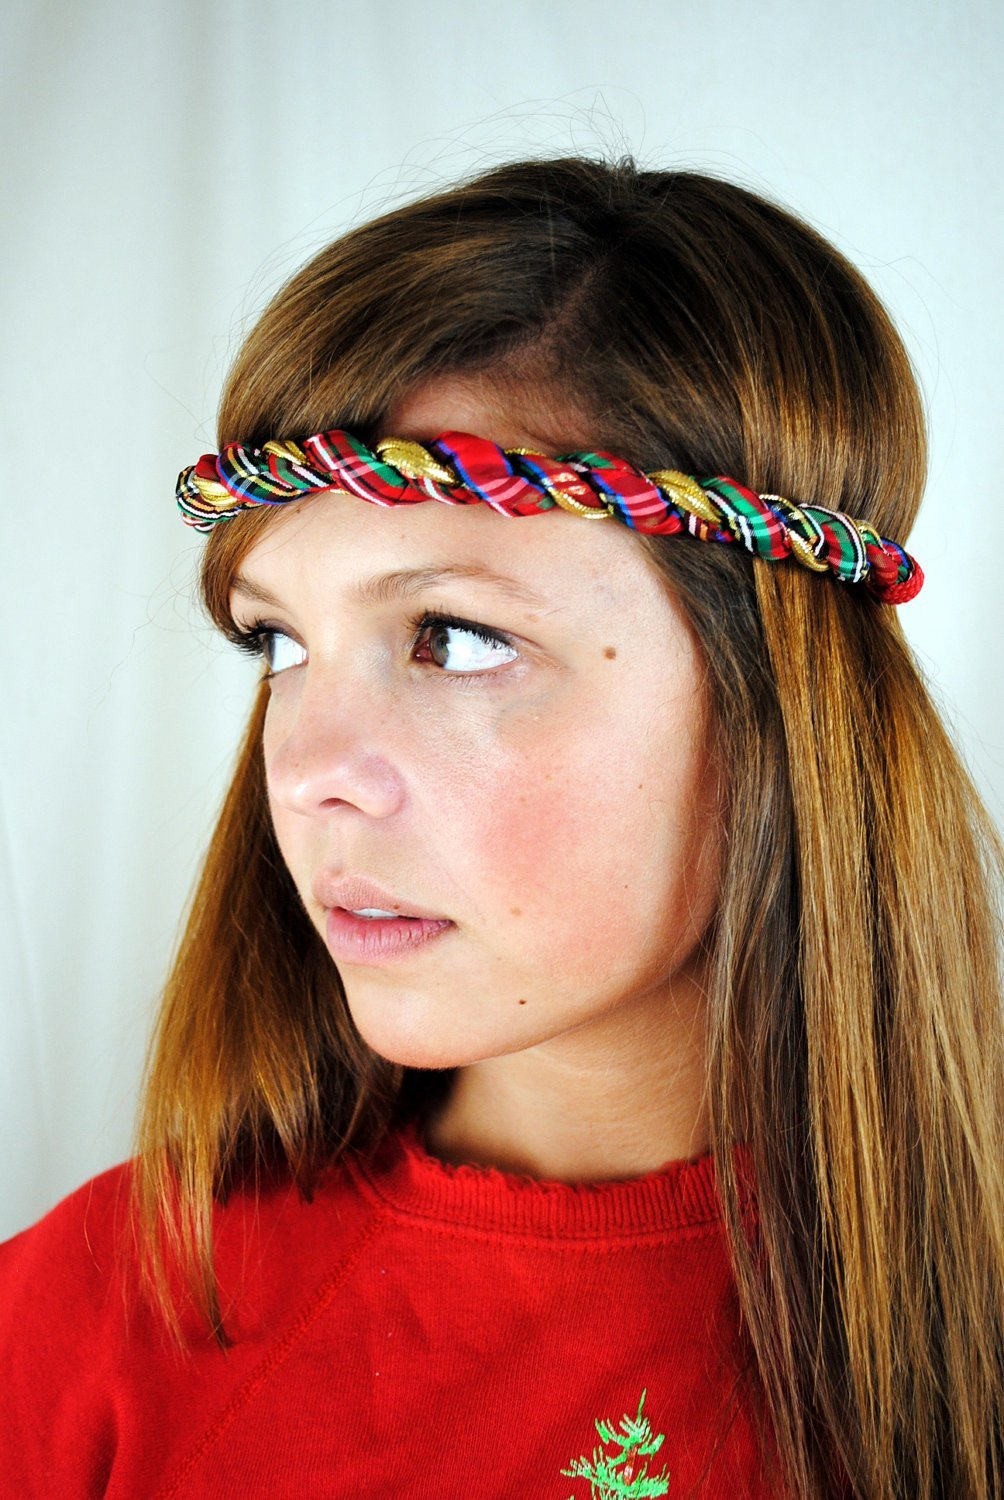 The Best Vintage Christmas 80S Workout Headband Pictures